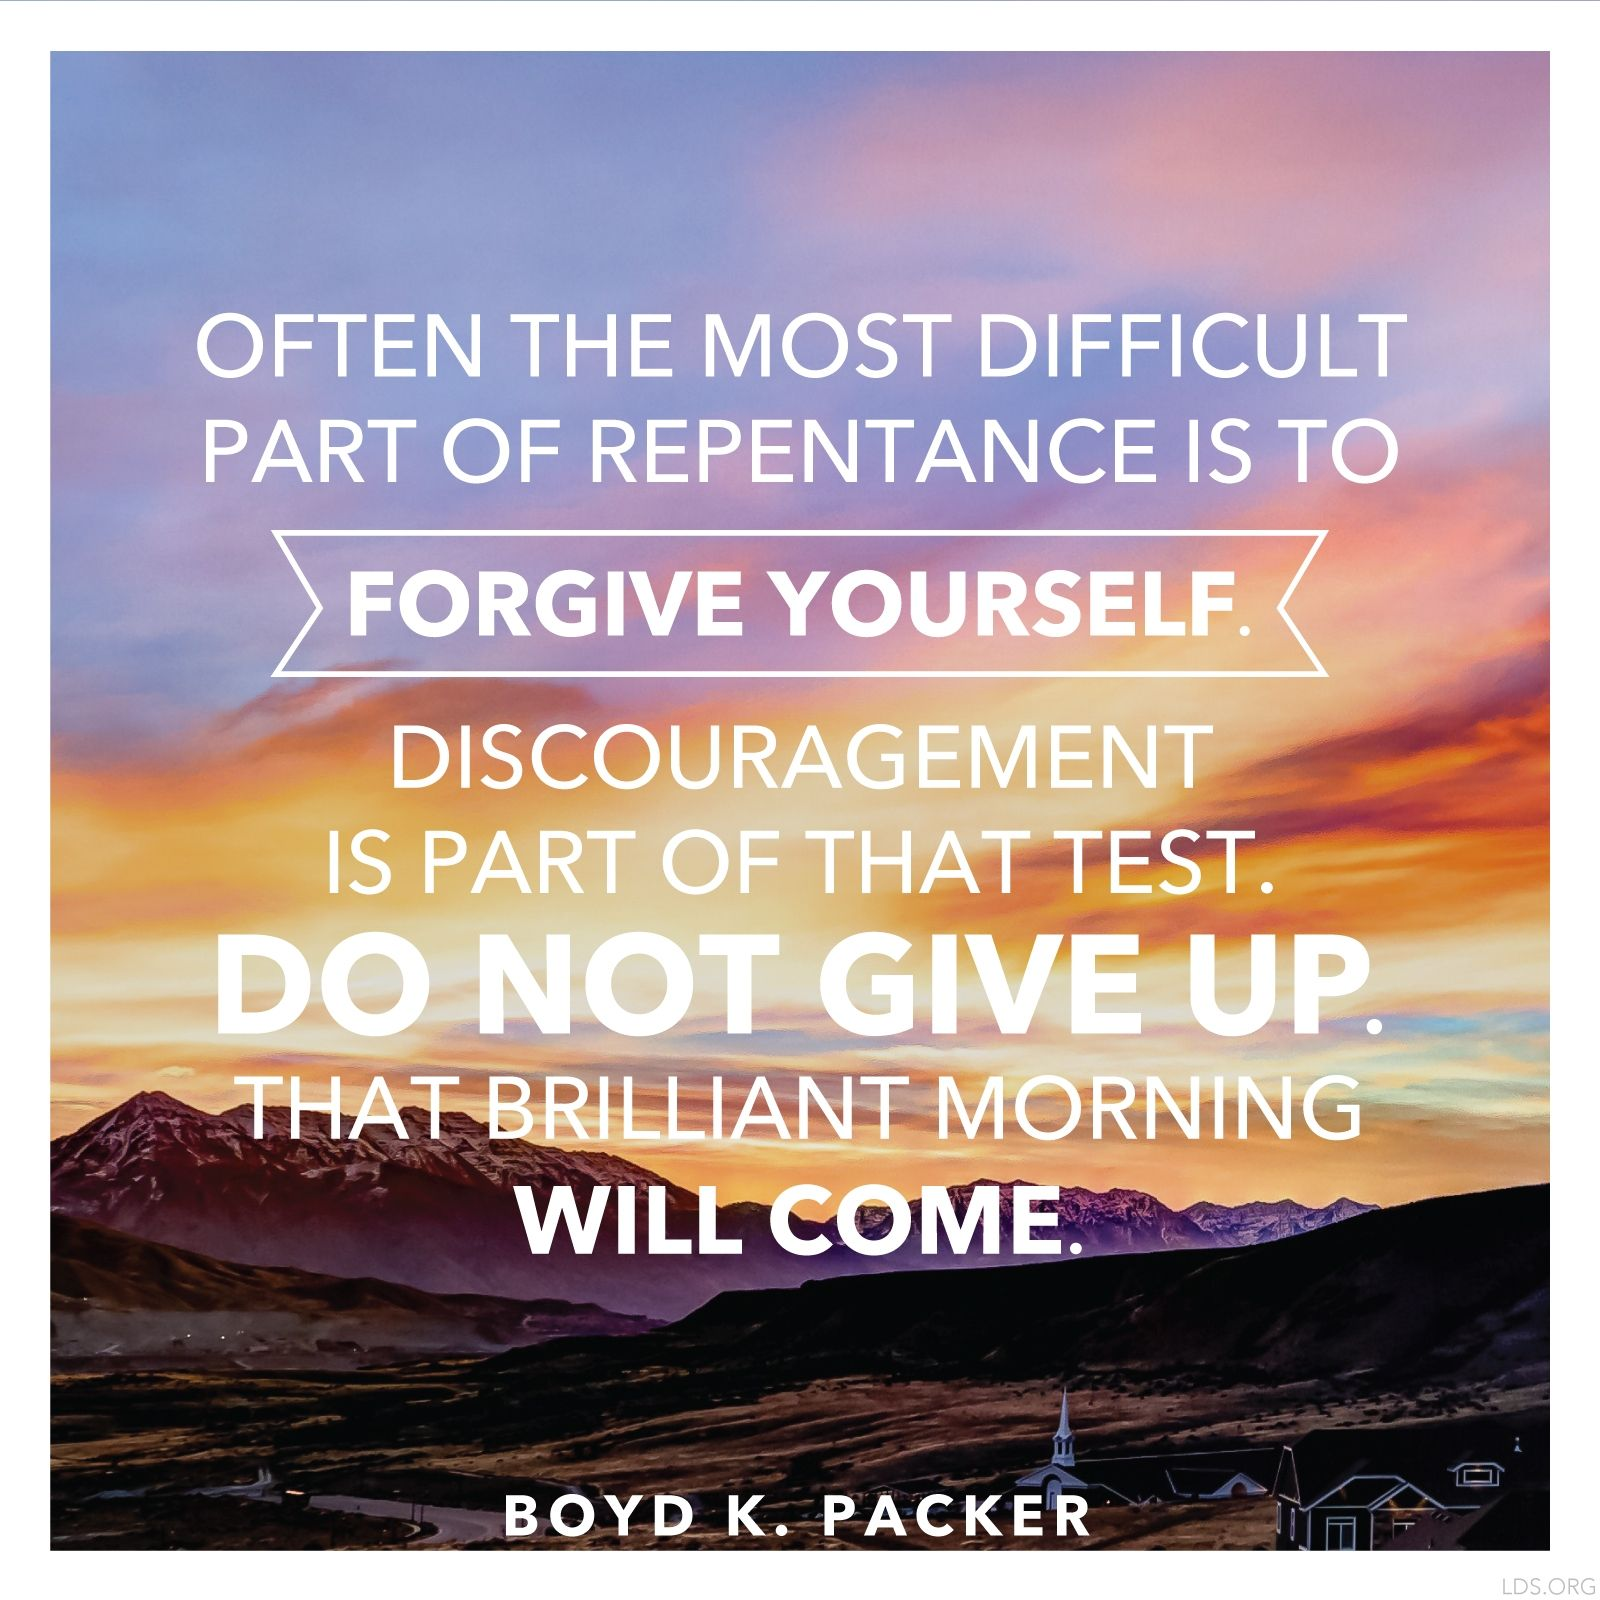 """""""Often the most difficult part of repentance is to forgive yourself. Discouragement is part of that test. Do not give up. That brilliant morning will come.""""—President Boyd K. Packer, """"The Brilliant Morning of Forgiveness"""""""